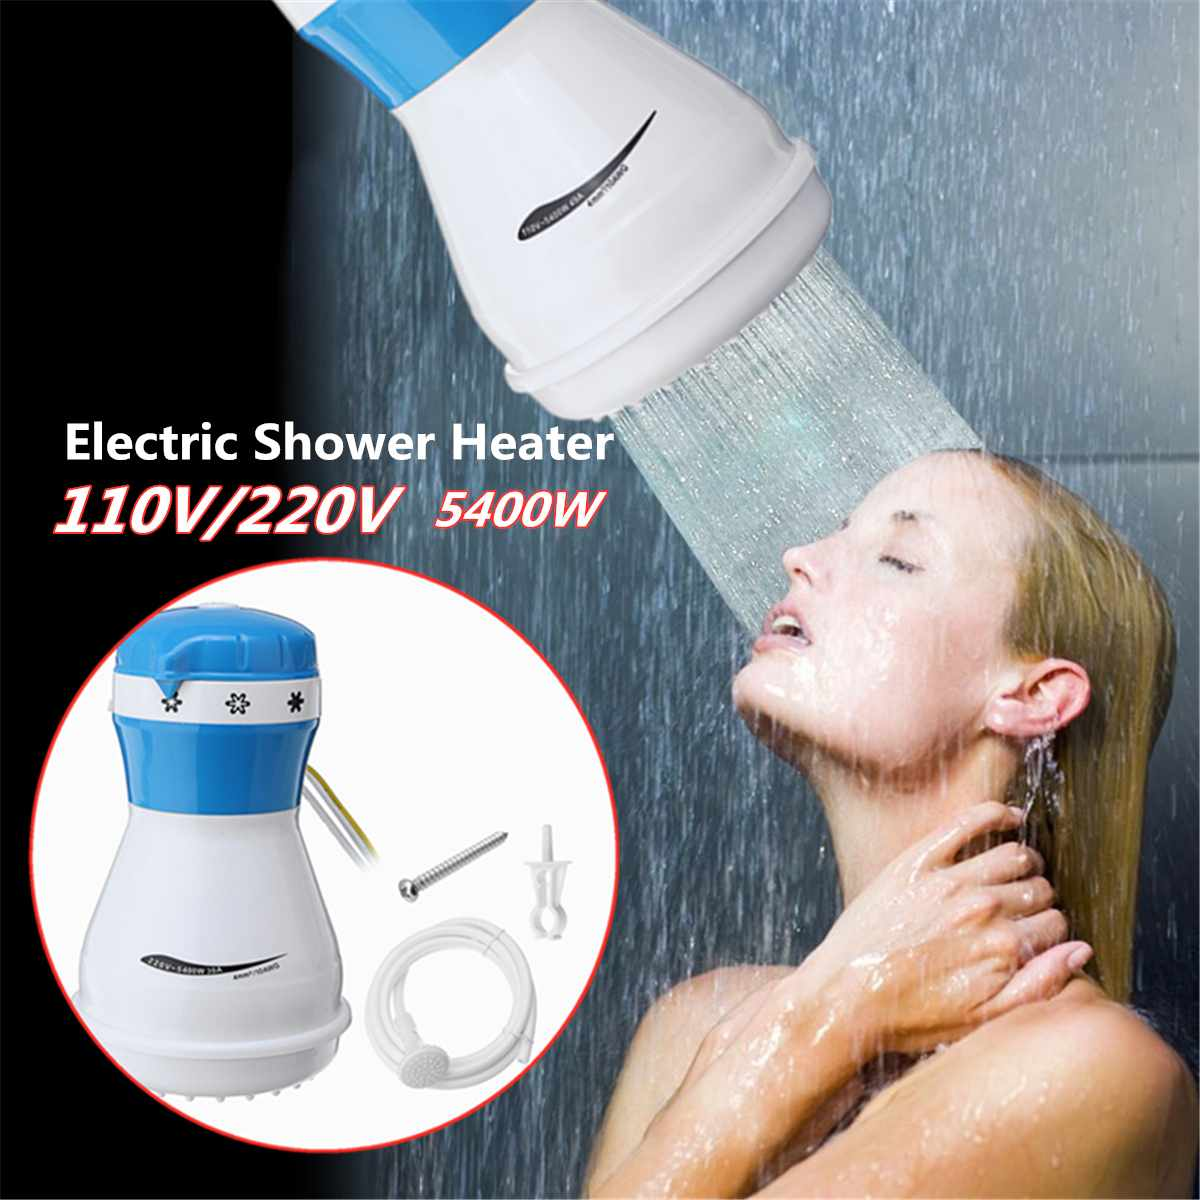 5400W 110V/220V Electric Shower Heater Instant Hot Faucet Bathroom  Water Heating Instantaneous Water Heater